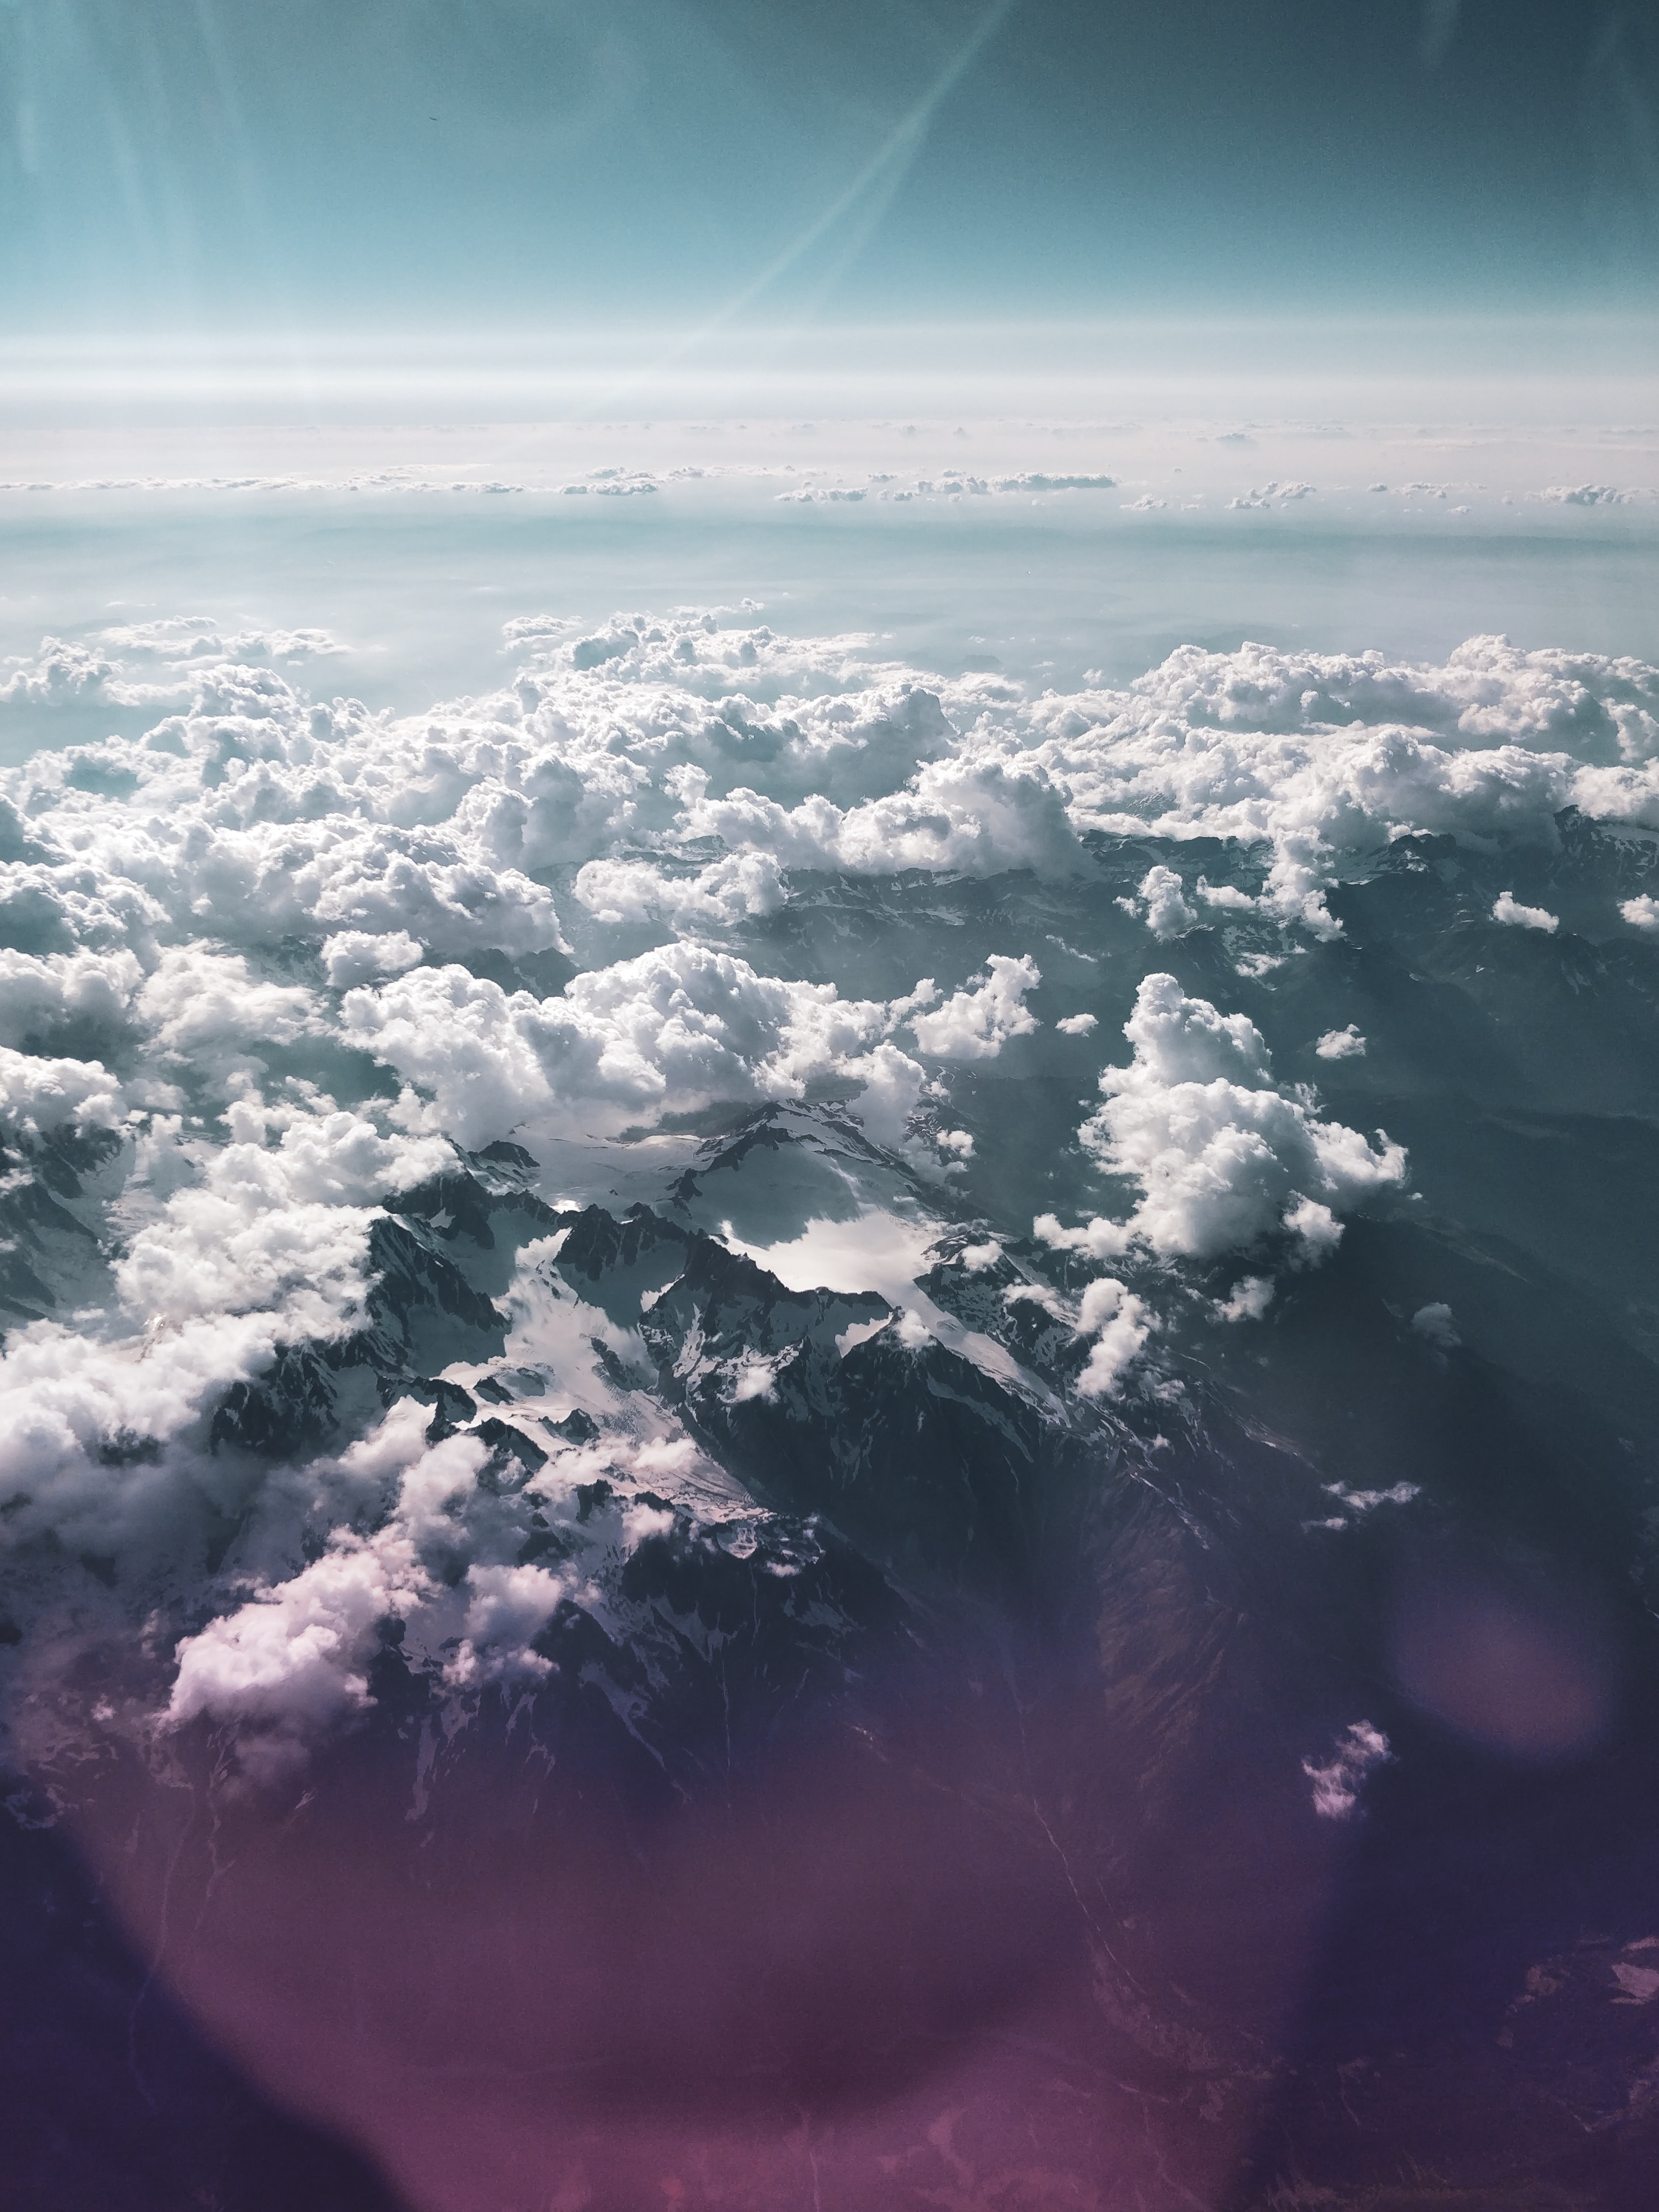 mountain under sea of clouds